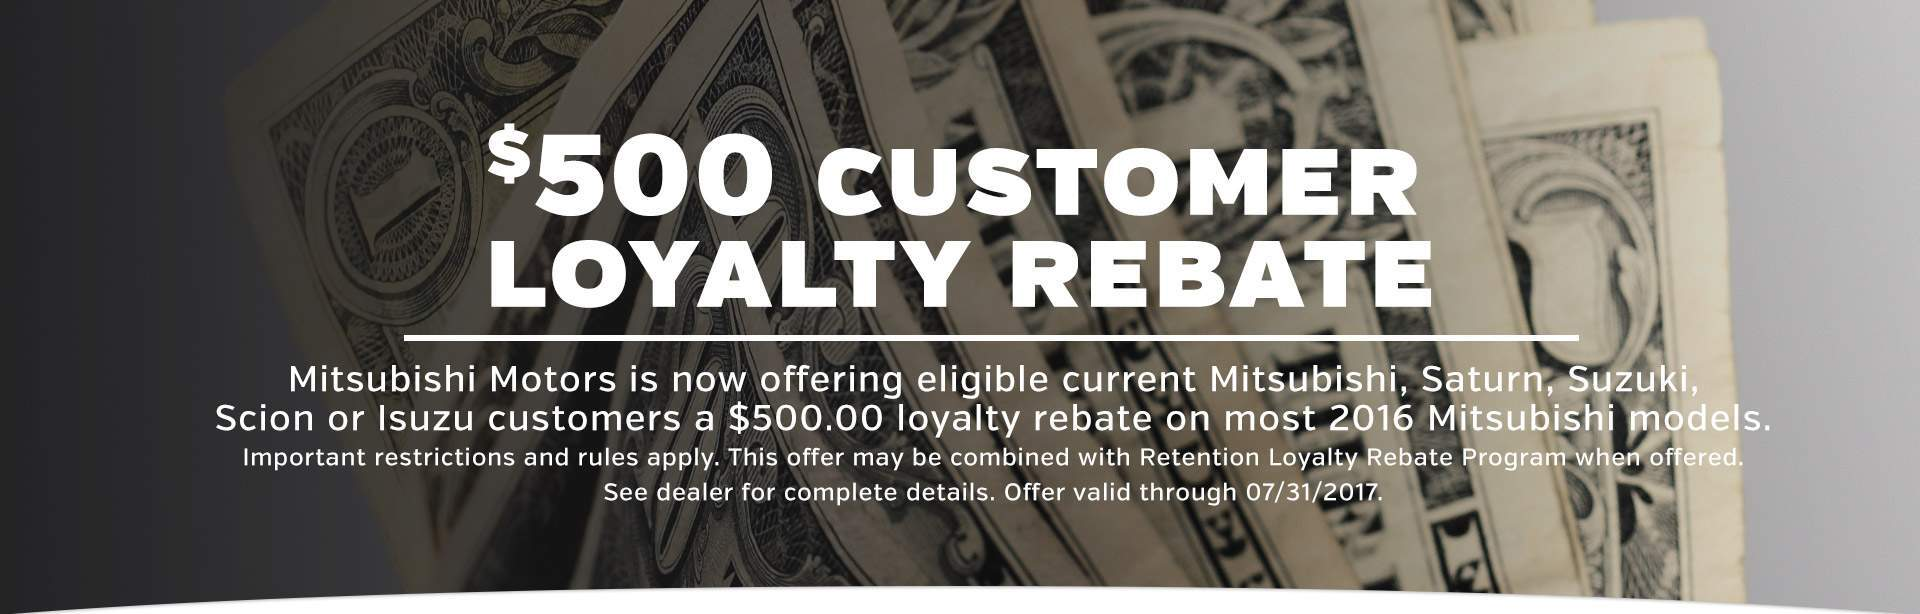 Customer Loyalty Rebate